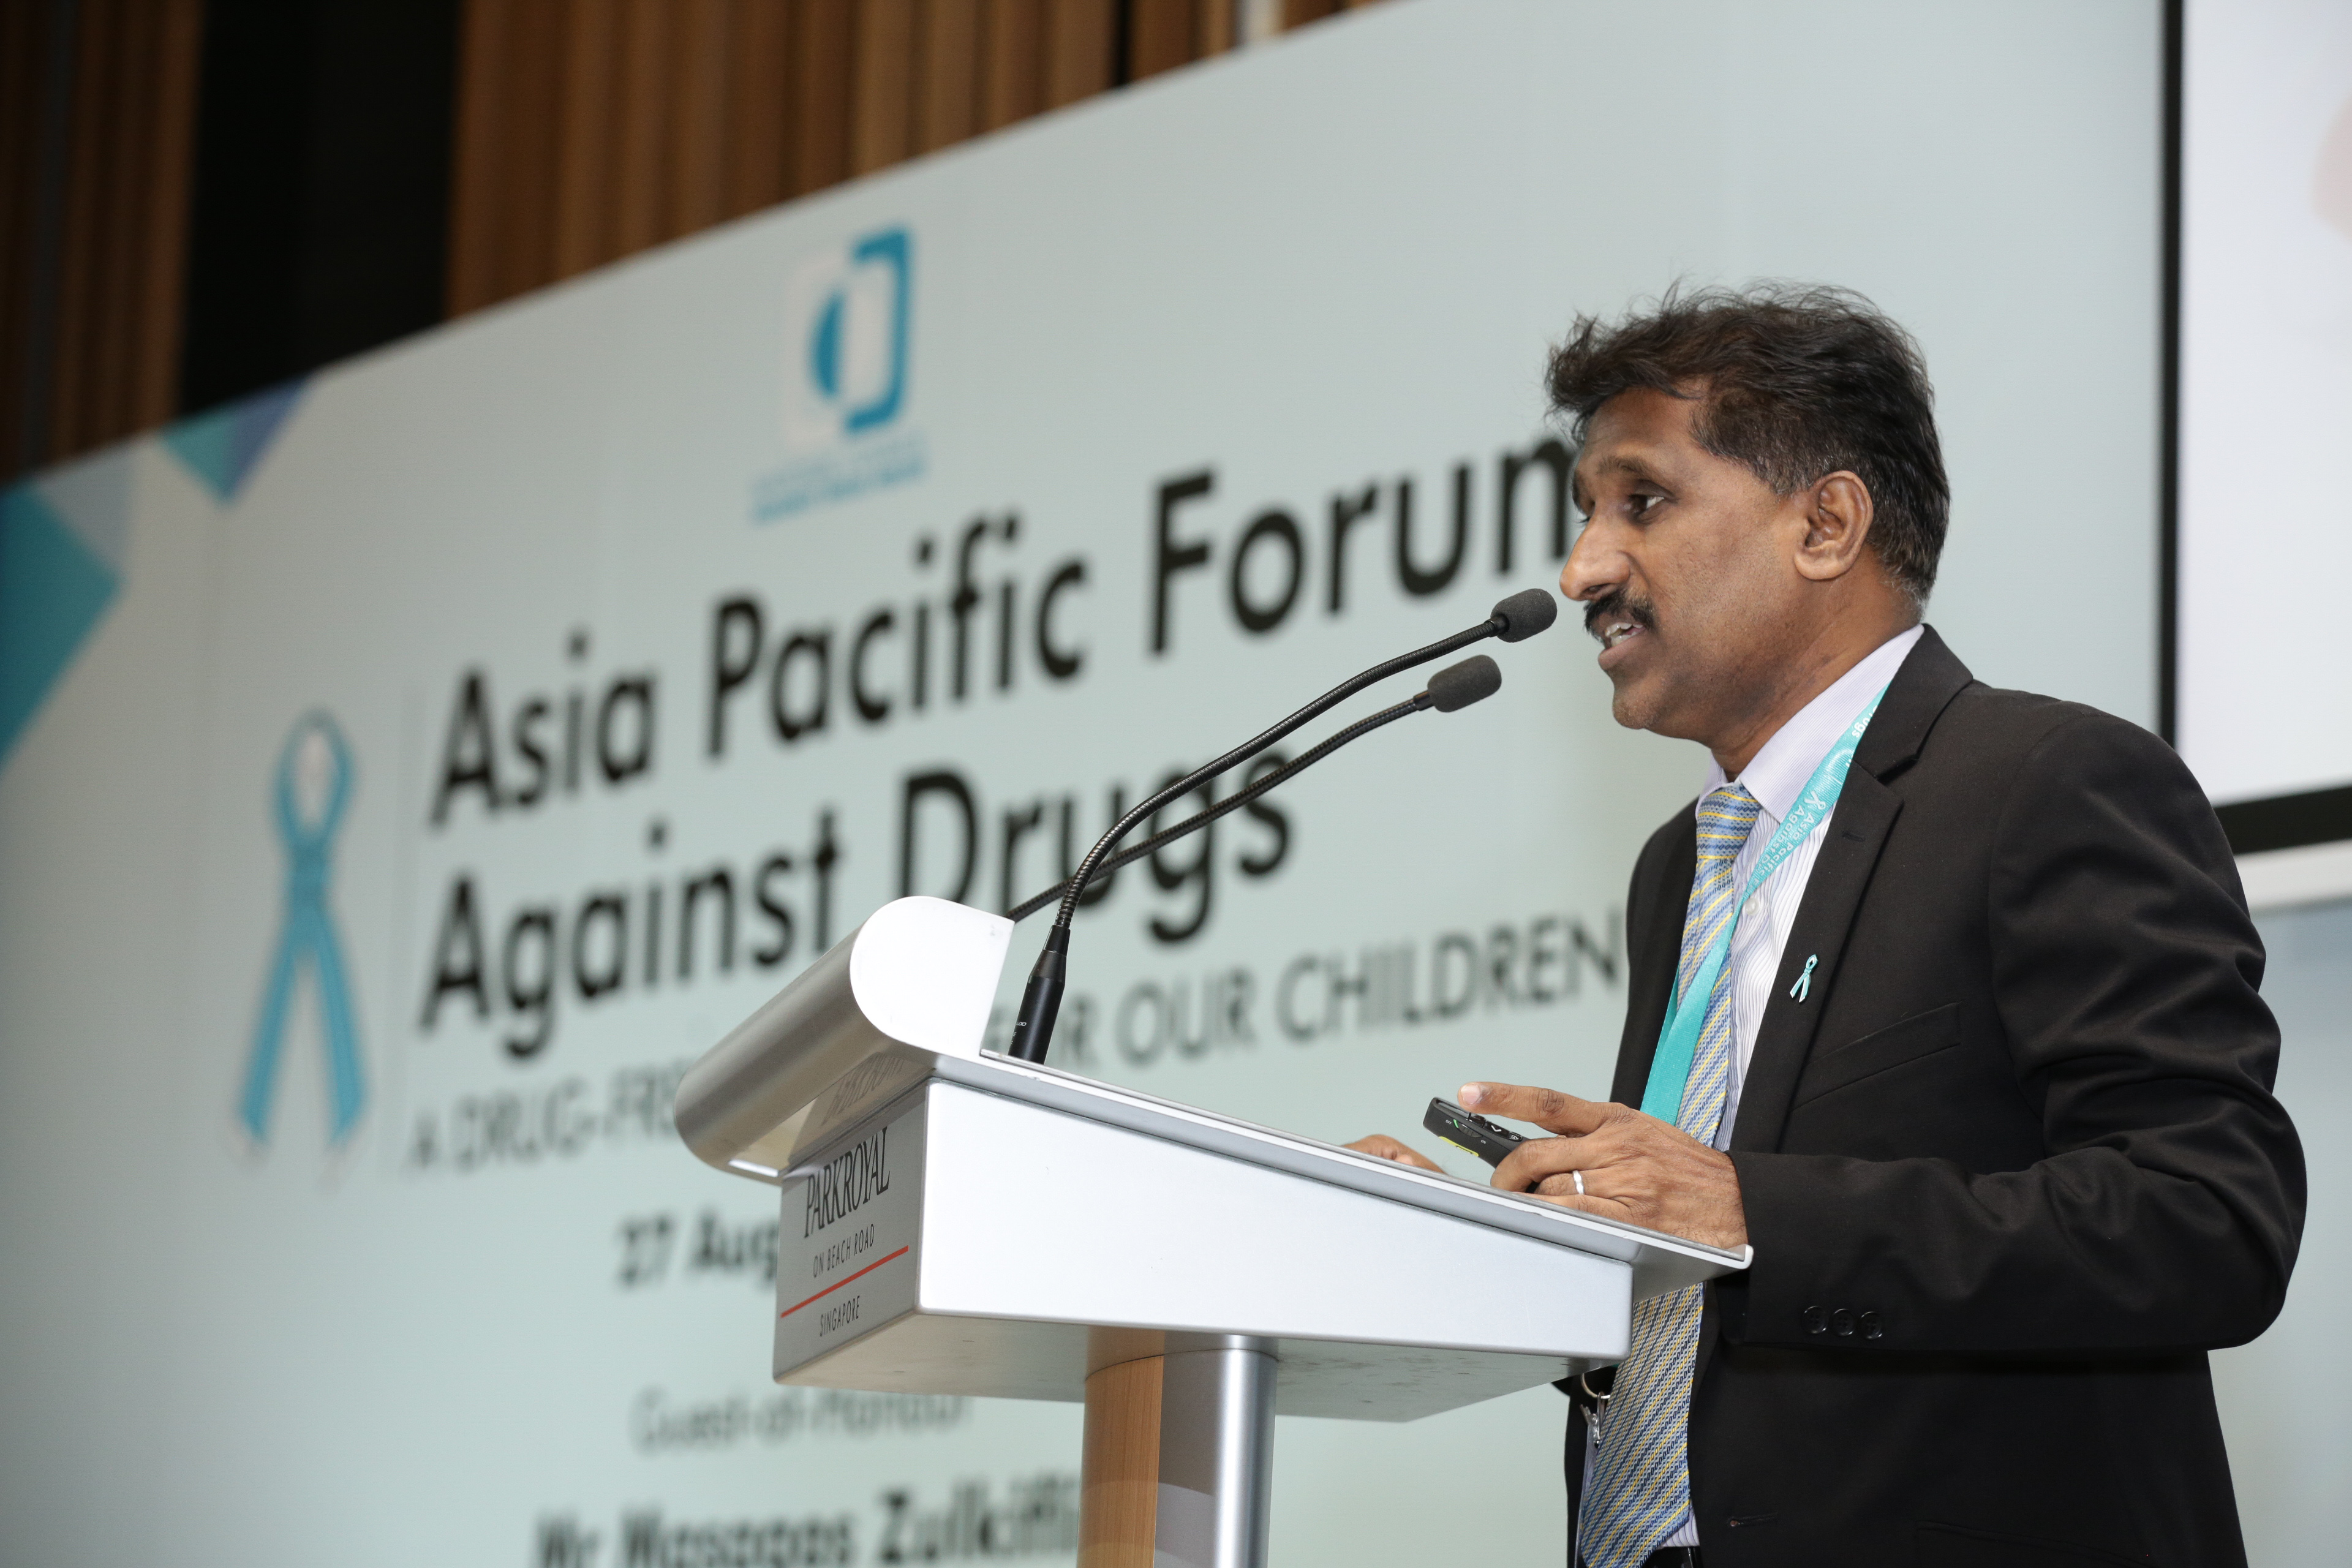 One of the speakers during the APFAD 2015